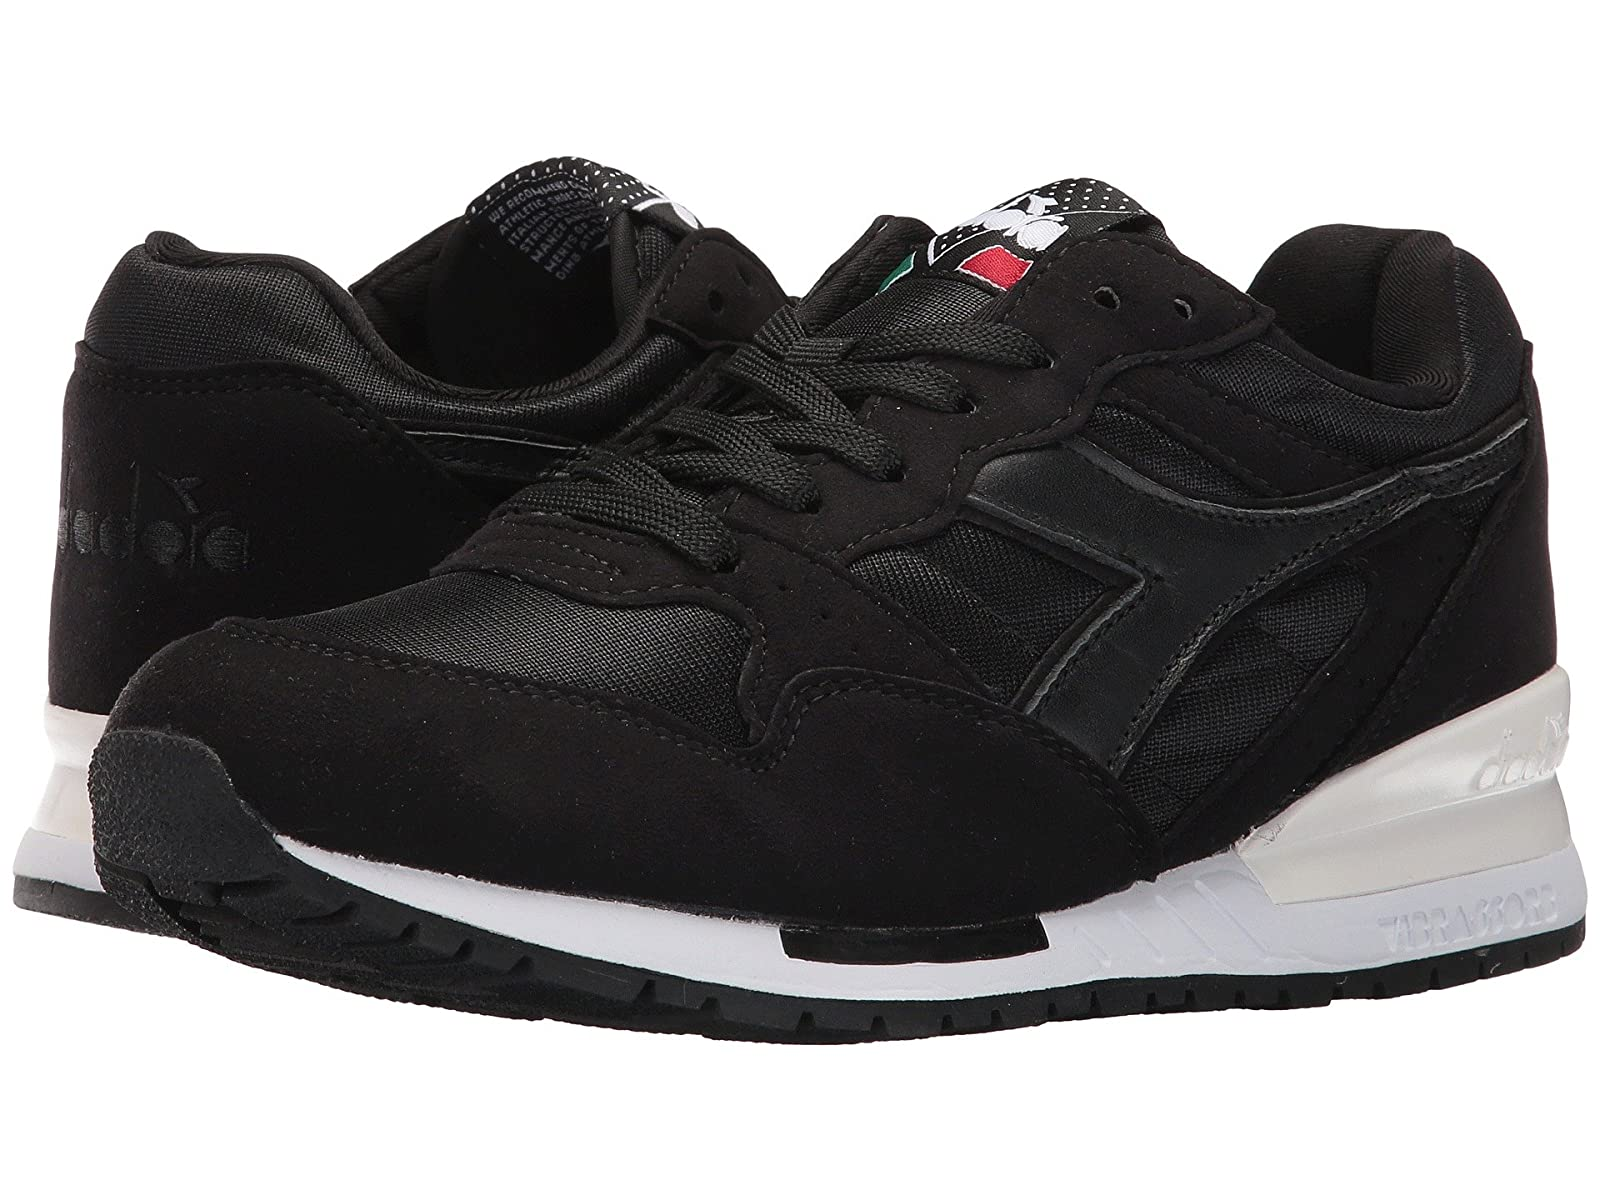 Diadora Intrepid NYLCheap and distinctive eye-catching shoes